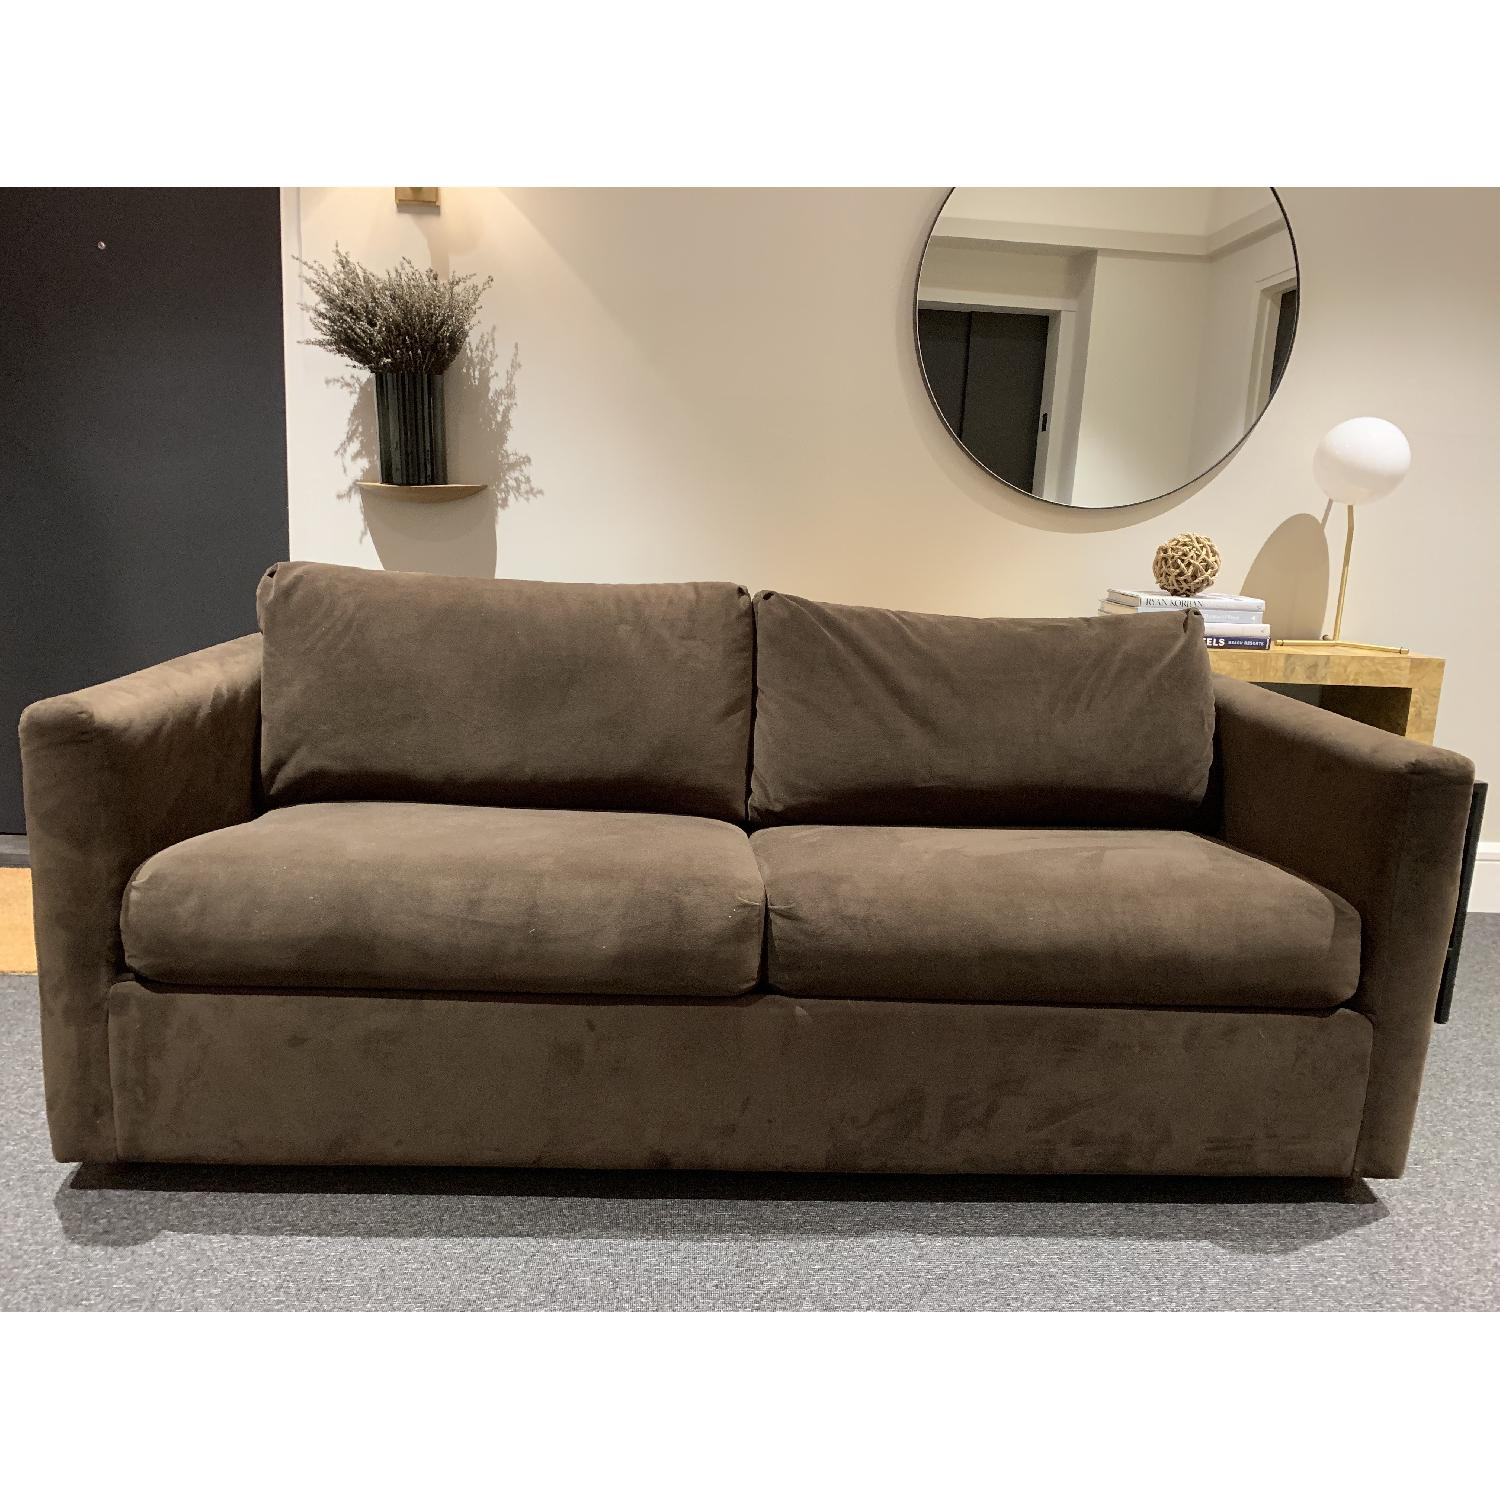 Club Furniture Queen Sleeper Sofa - image-1